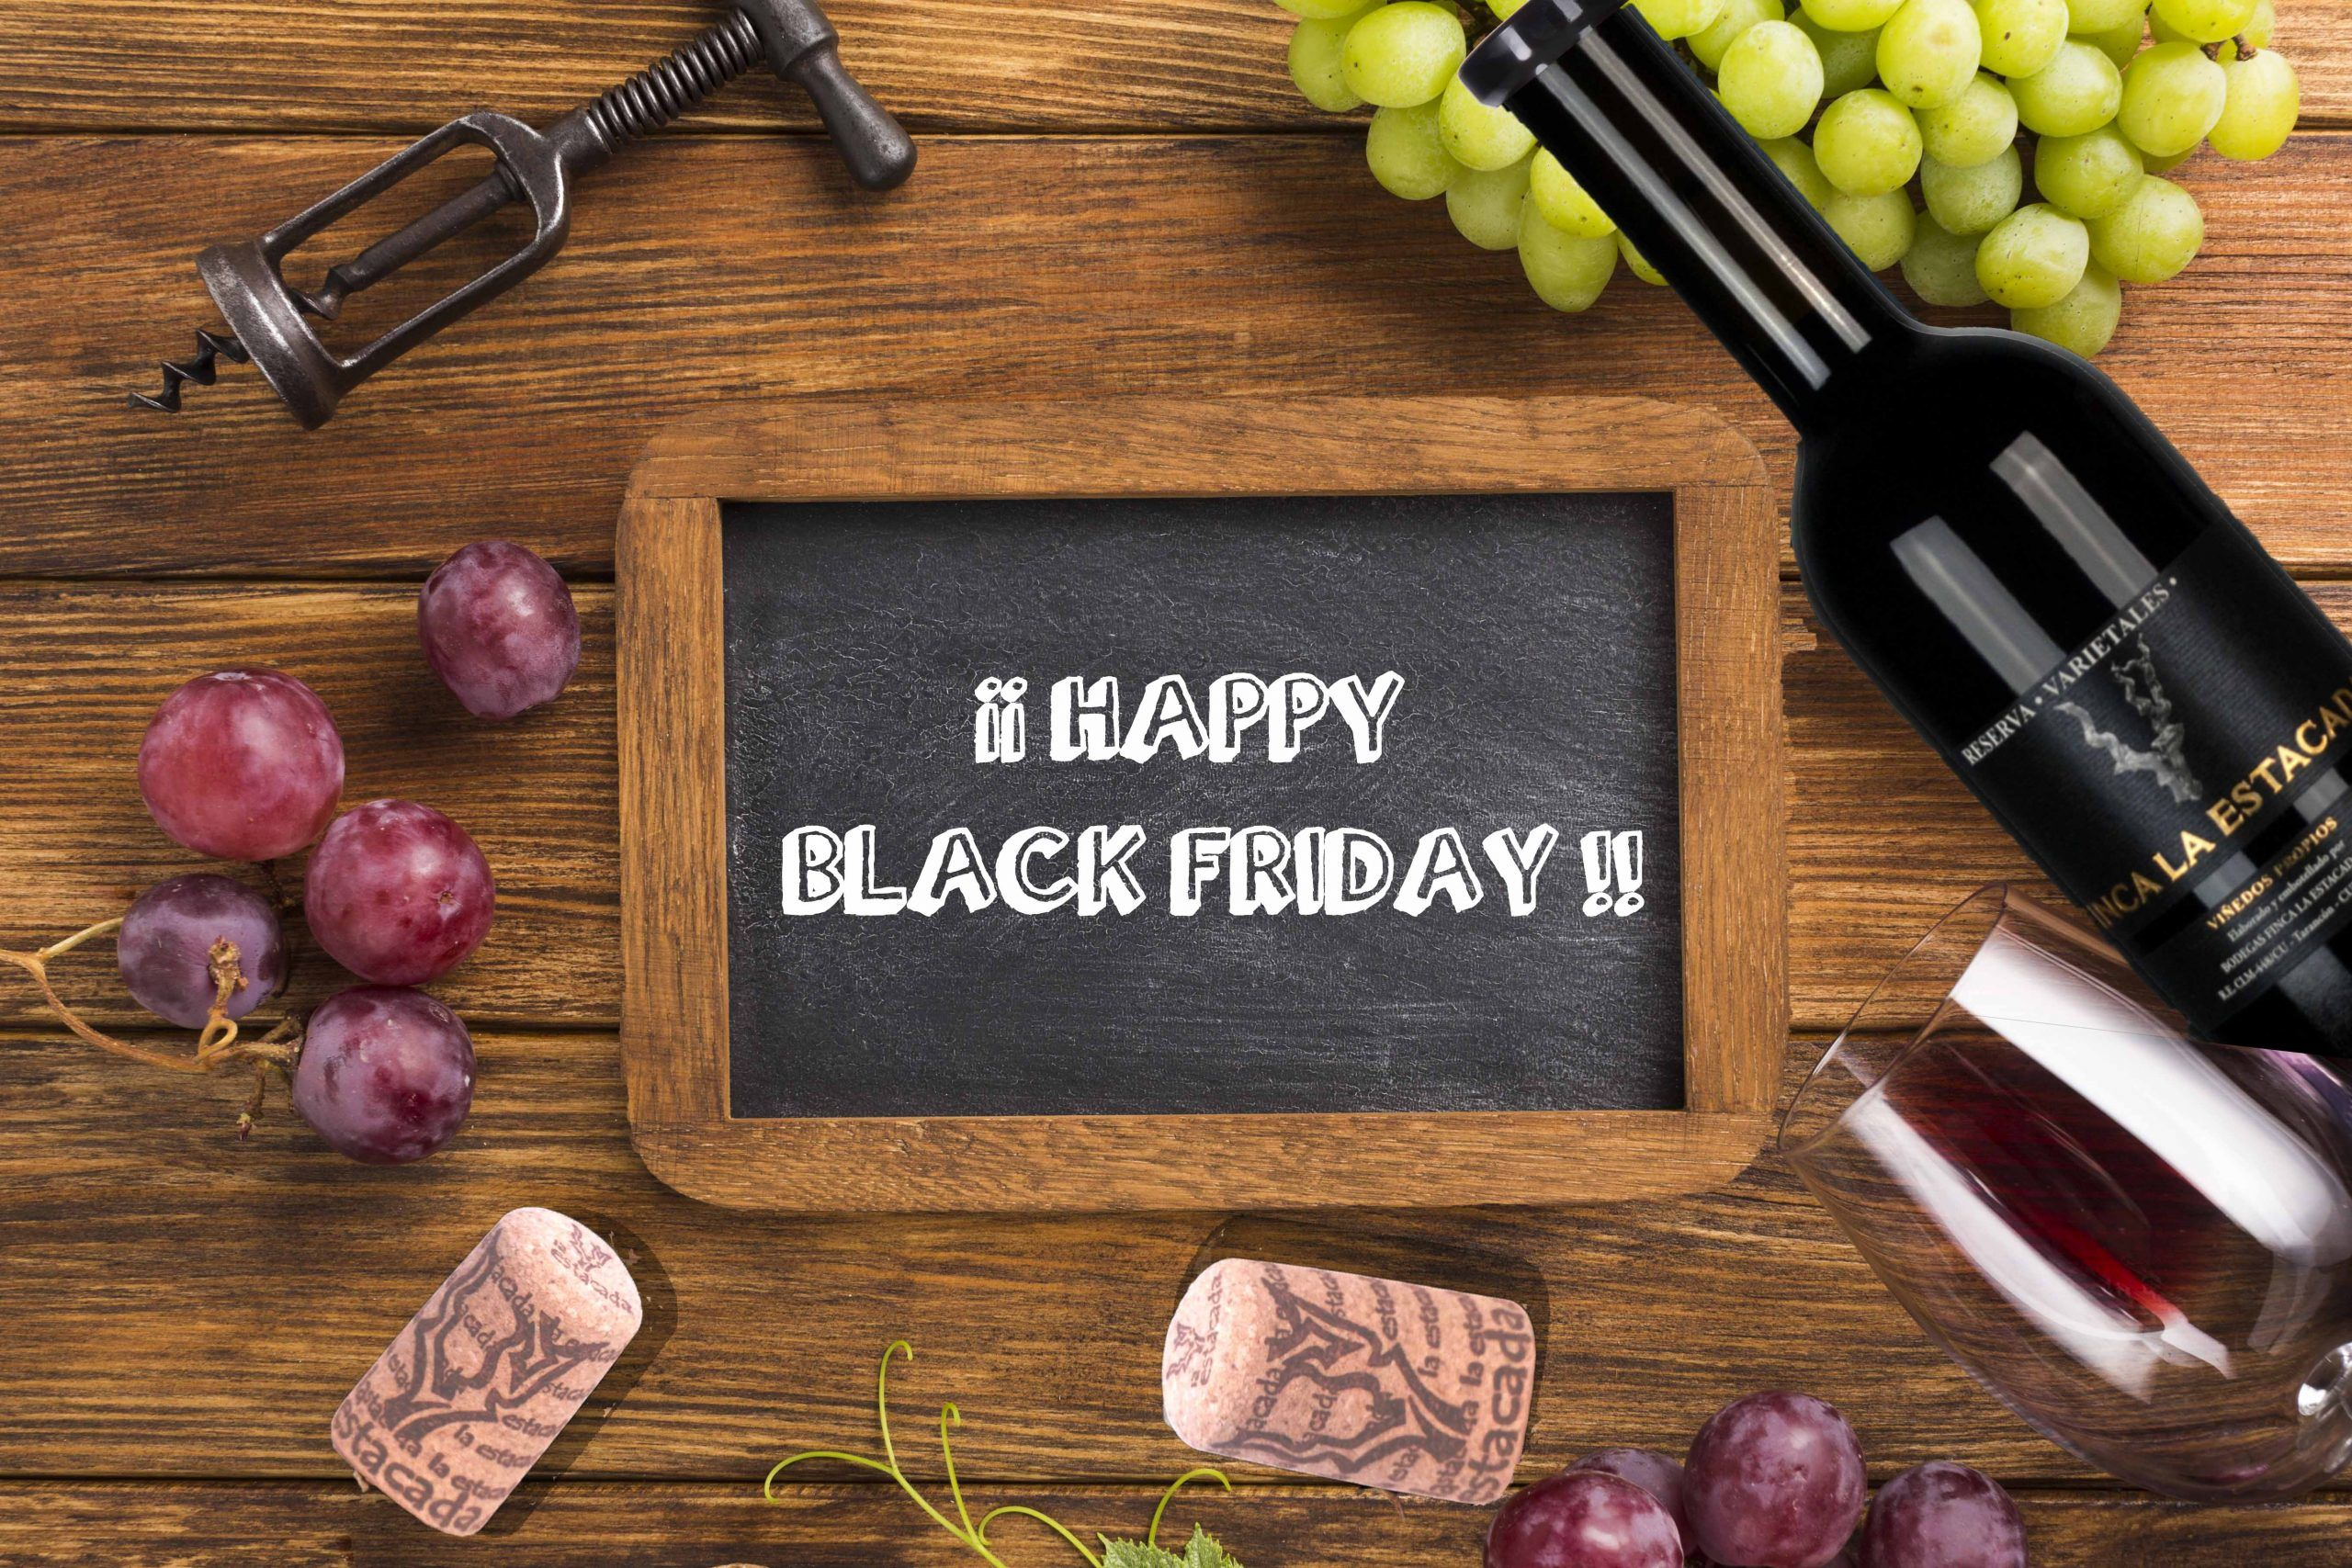 COMIENZA EL BLACK FRIDAY EN FINCA LA ESTACADA